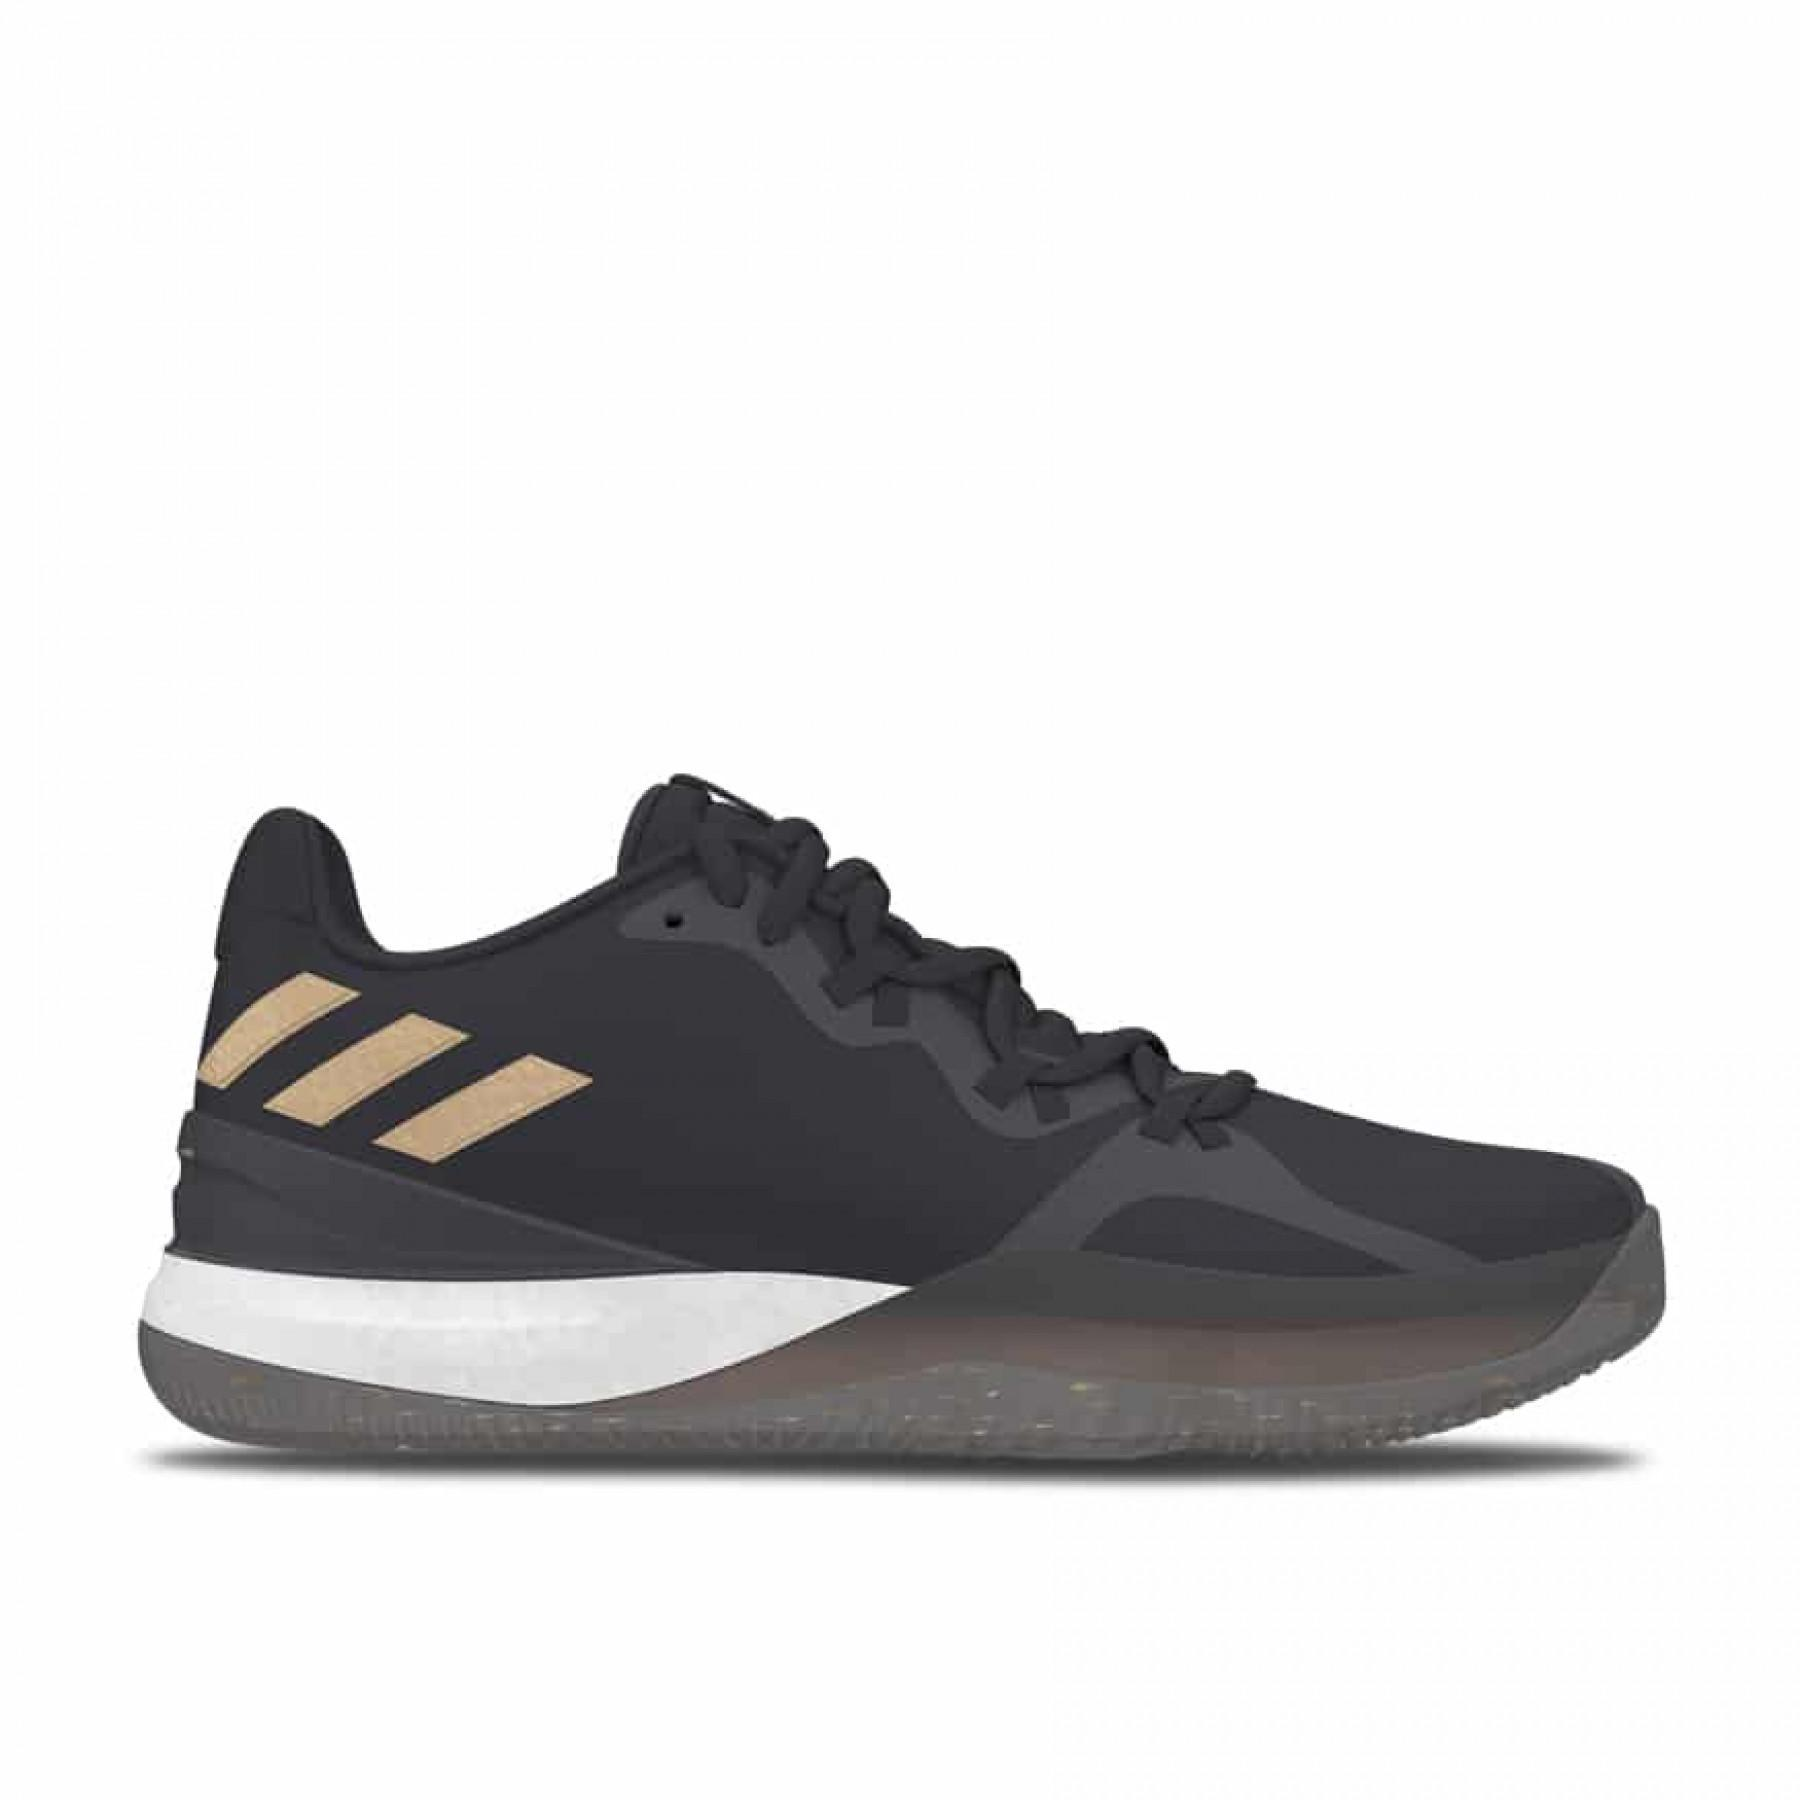 adidas Crazylight Boost Shoes 2